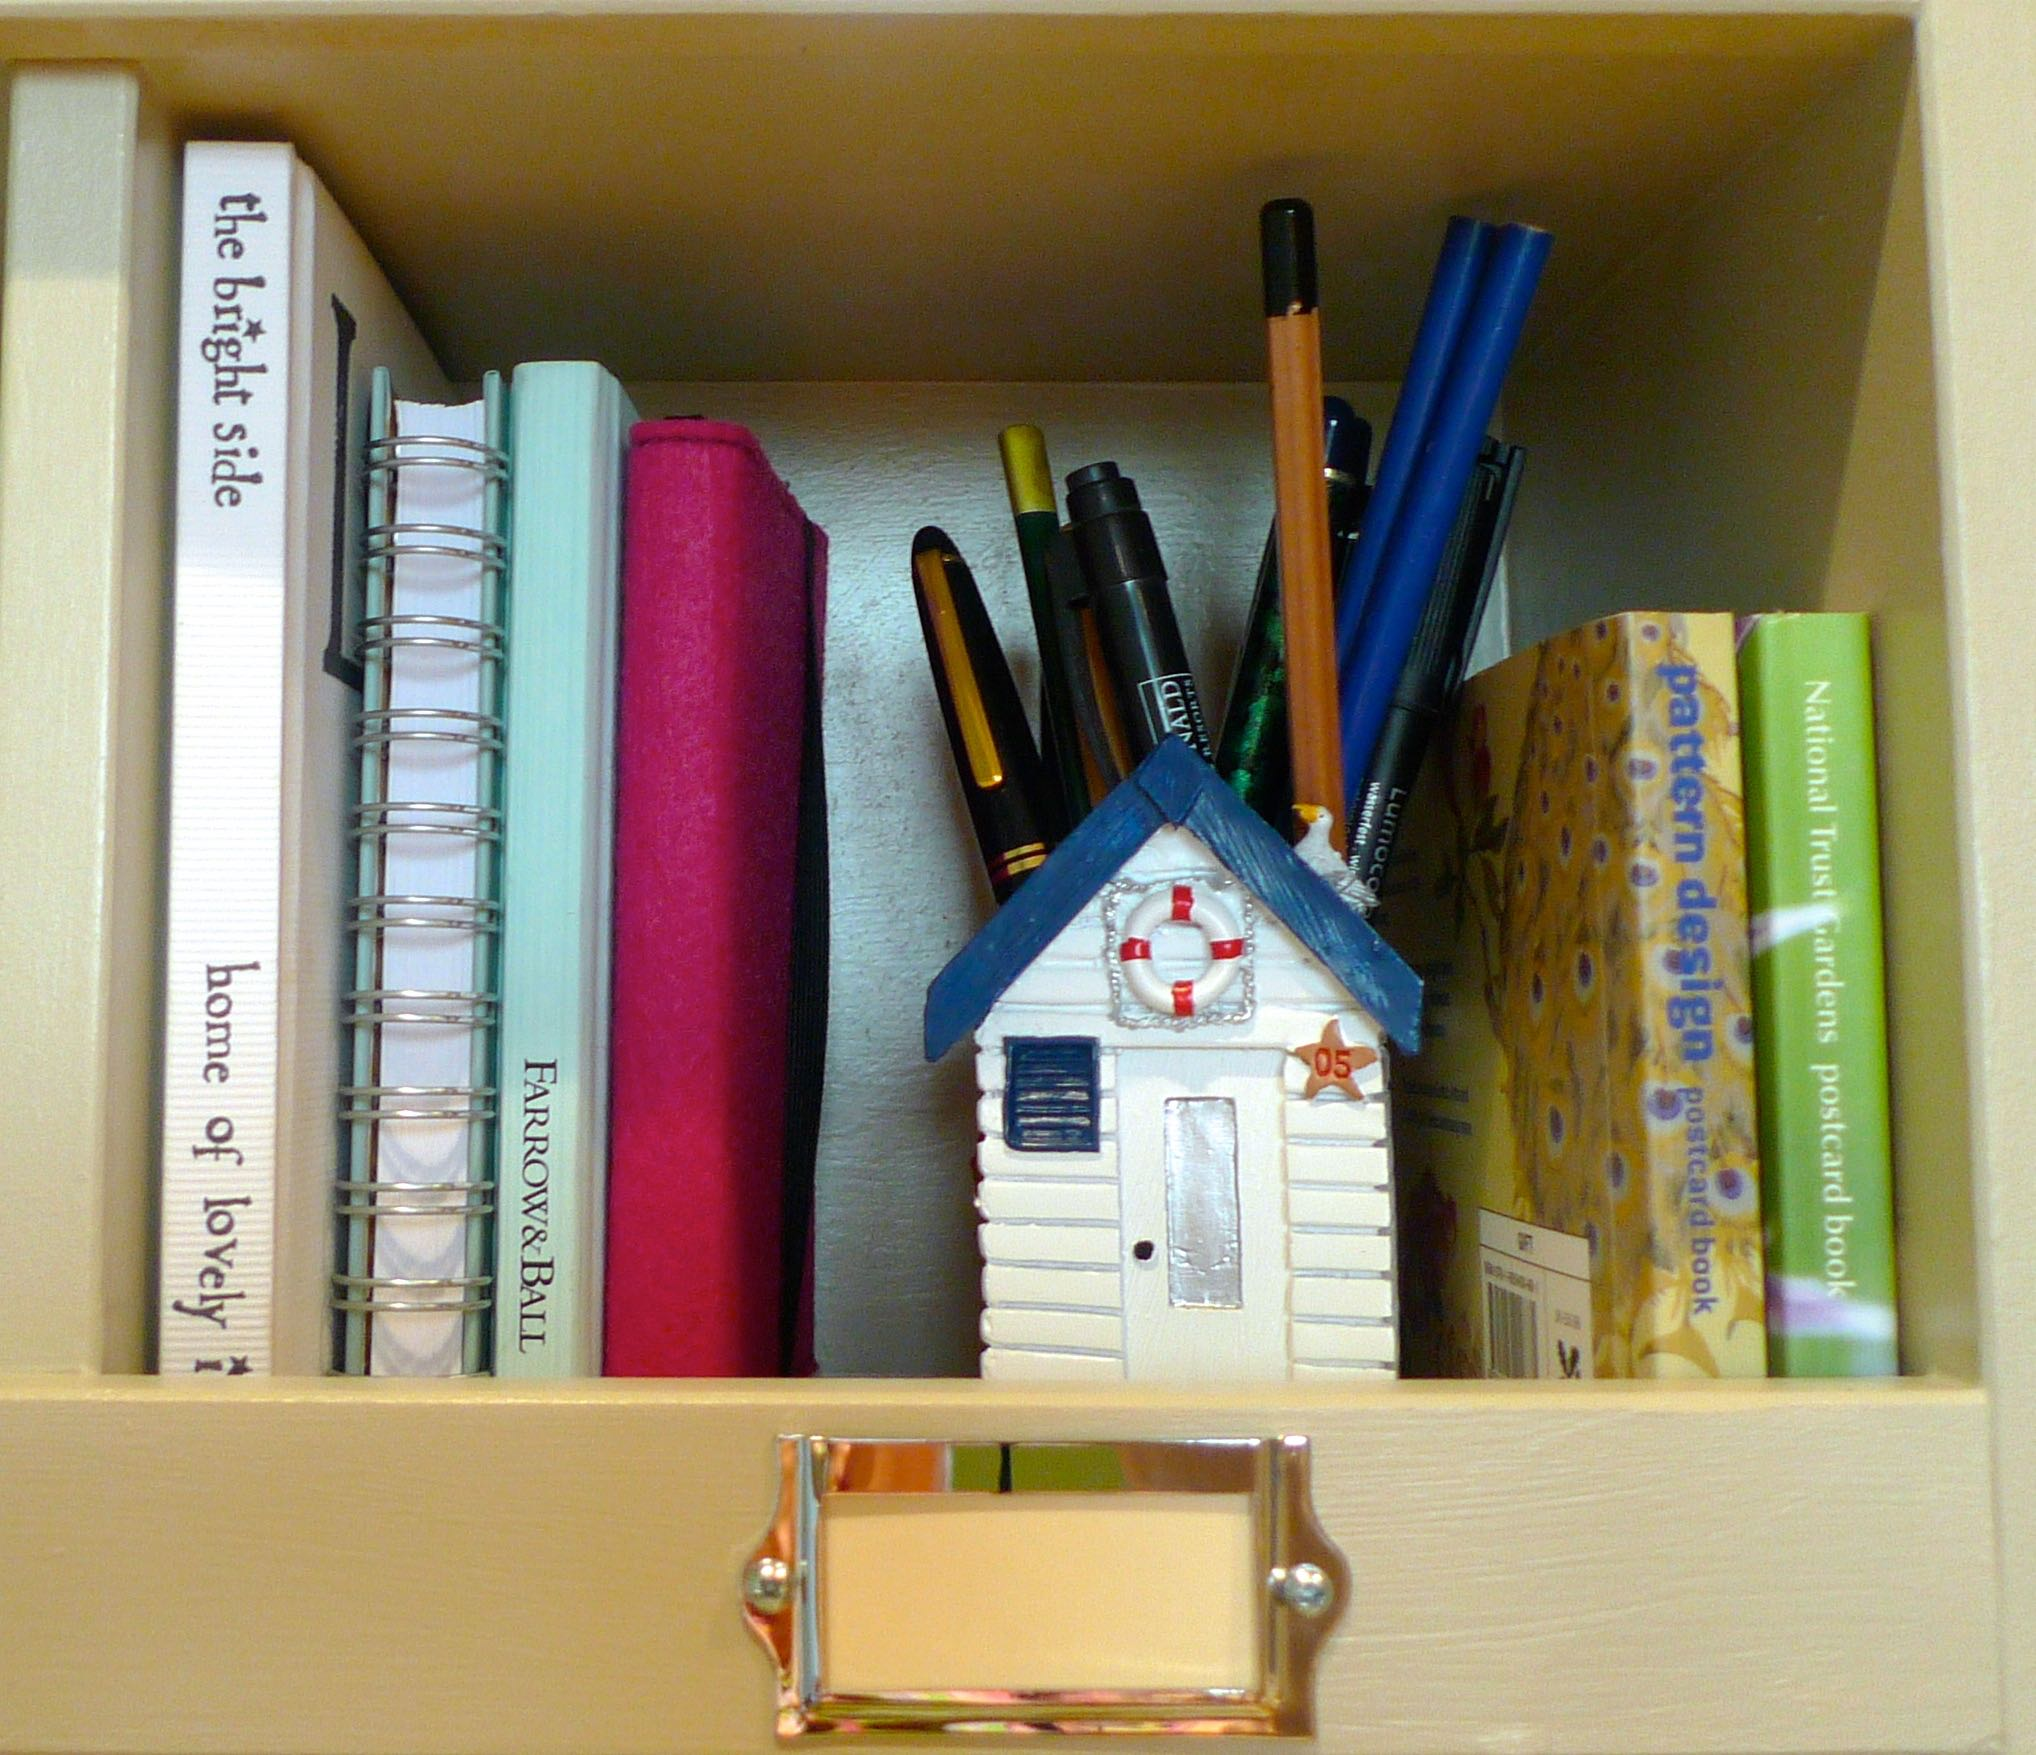 SOME NOTEBOOKS, POSTCARDS AND A POT FOR PENS